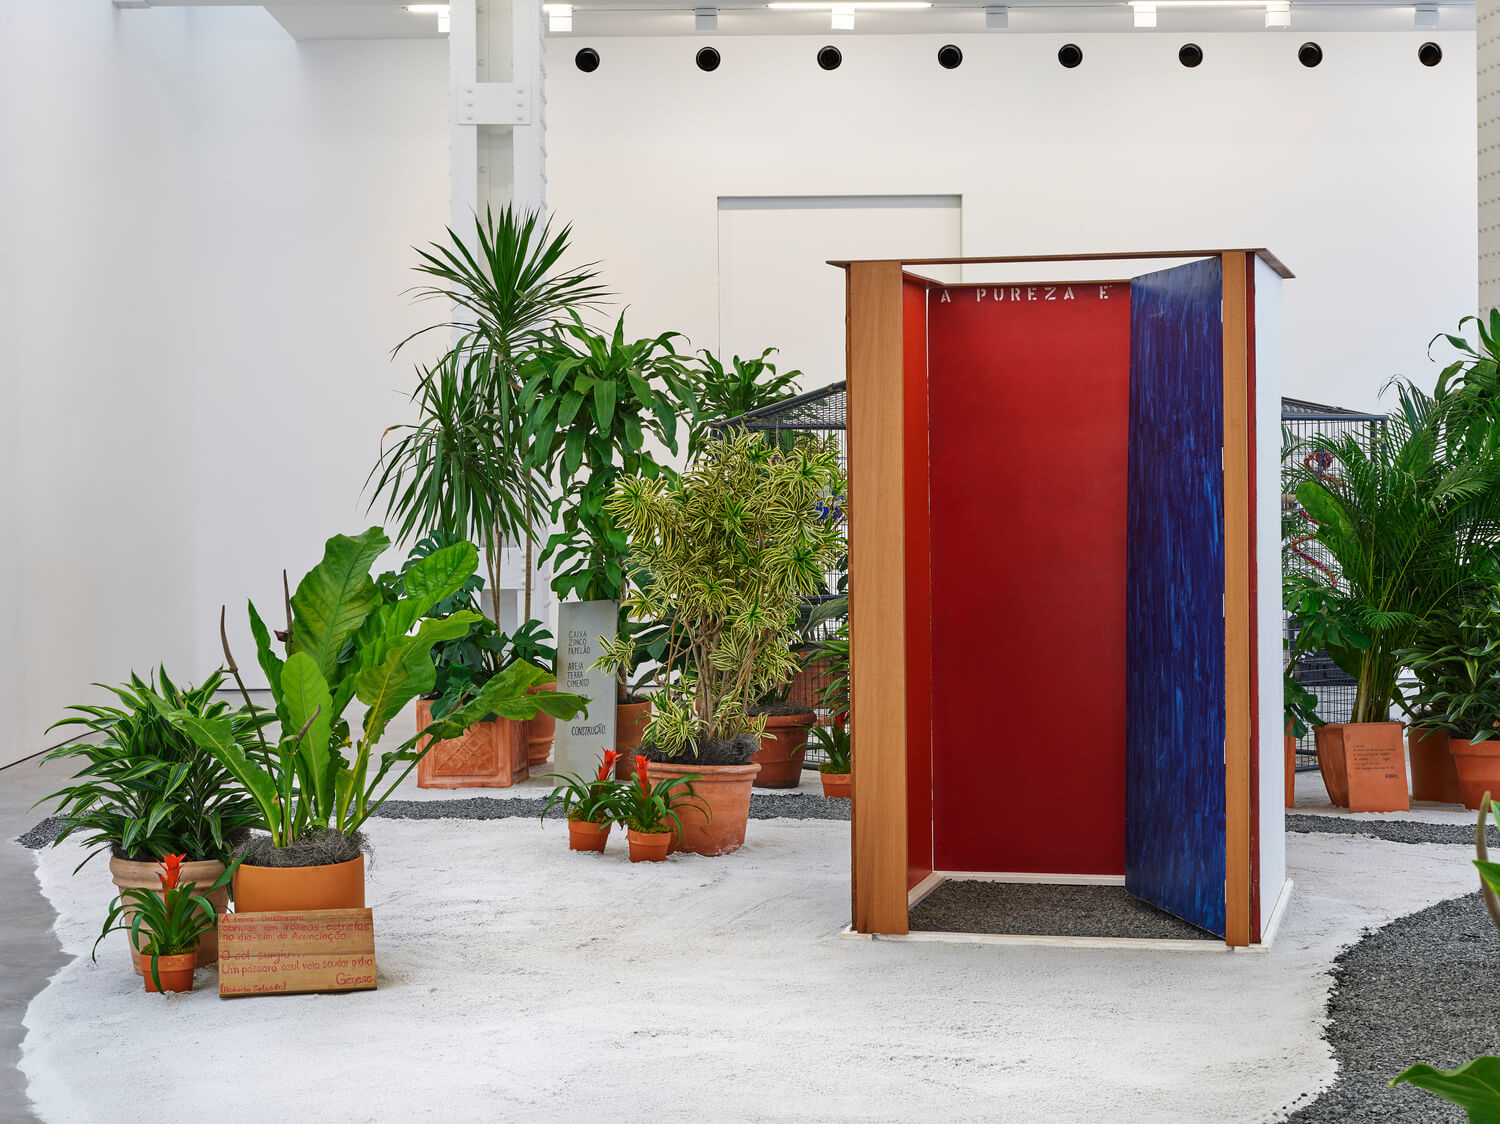 Step Into the Sensory World of Hélio Oiticica's 'Tropicália' at Lisson Gallery With This Video Narrated by the Late Brazilian Artist | artnet News